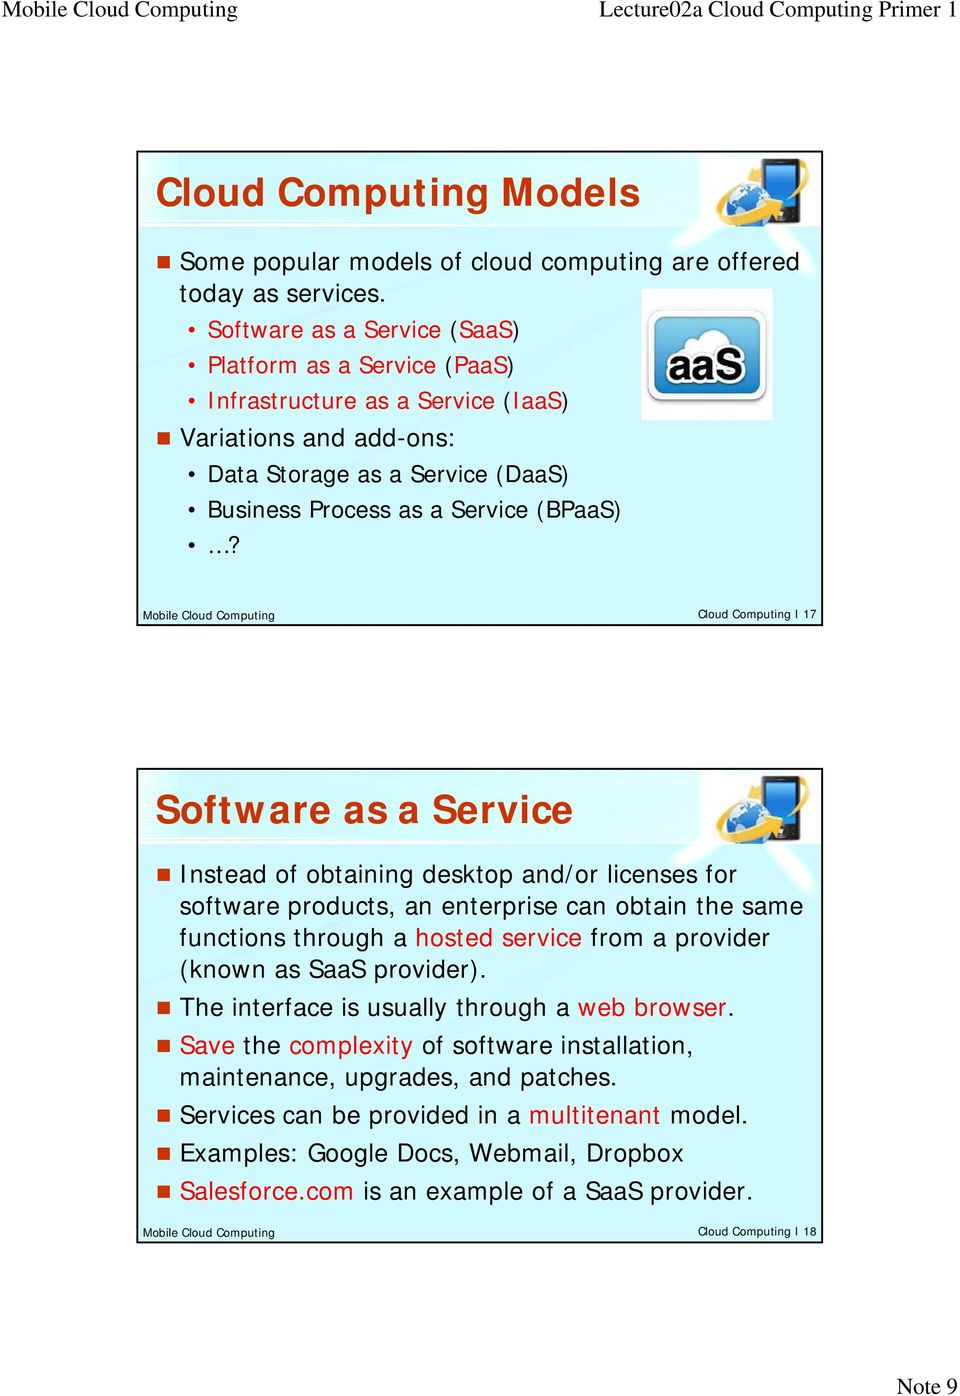 Mobile Cloud Computing Cloud Computing I 17 Software as a Service Instead of obtaining desktop and/or licenses for software products, an enterprise can obtain the same functions through h a hosted